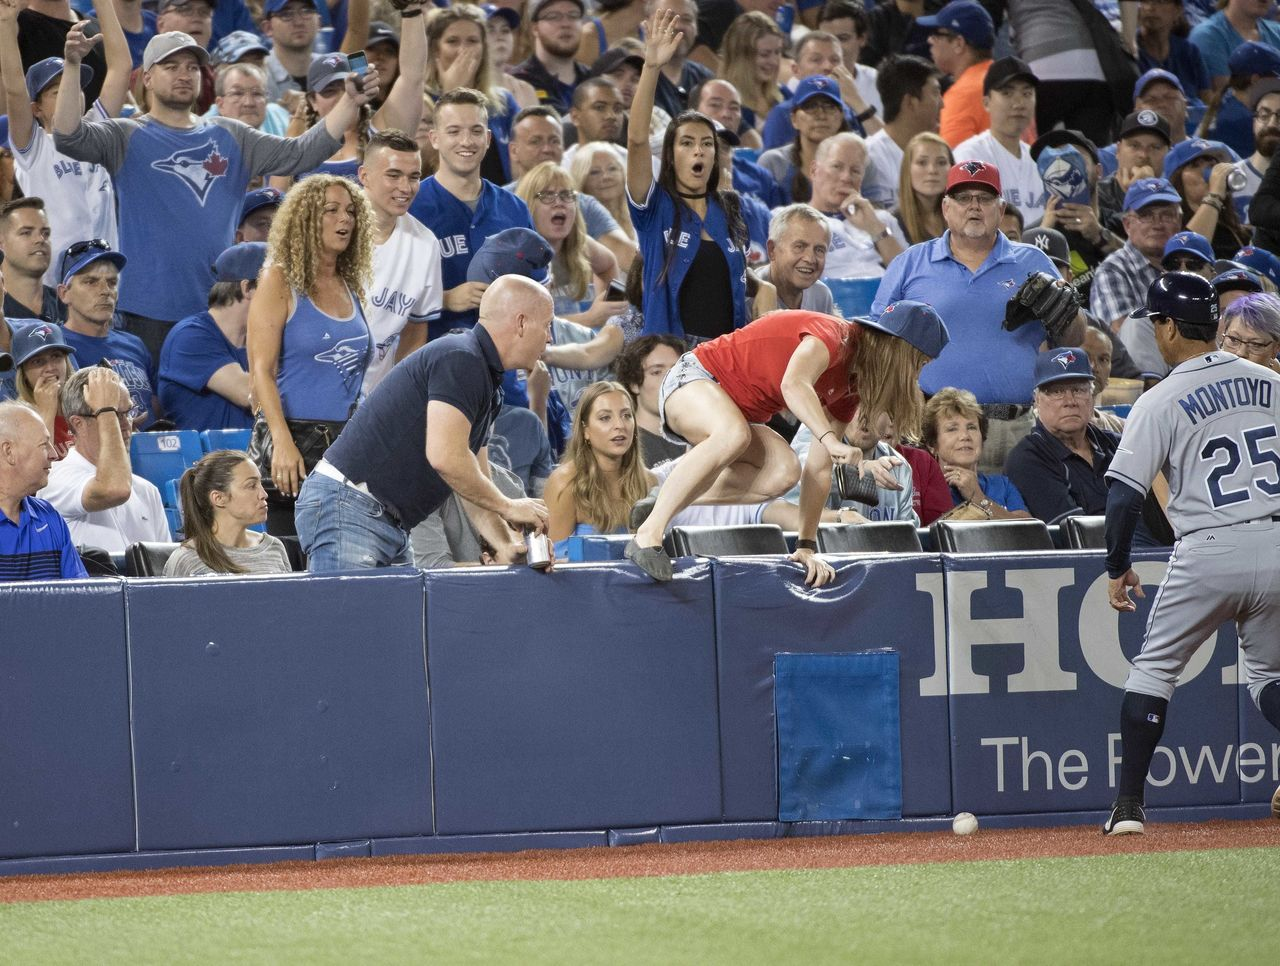 Cropped 2017 08 17t235504z 1736952612 nocid rtrmadp 3 mlb tampa bay rays at toronto blue jays